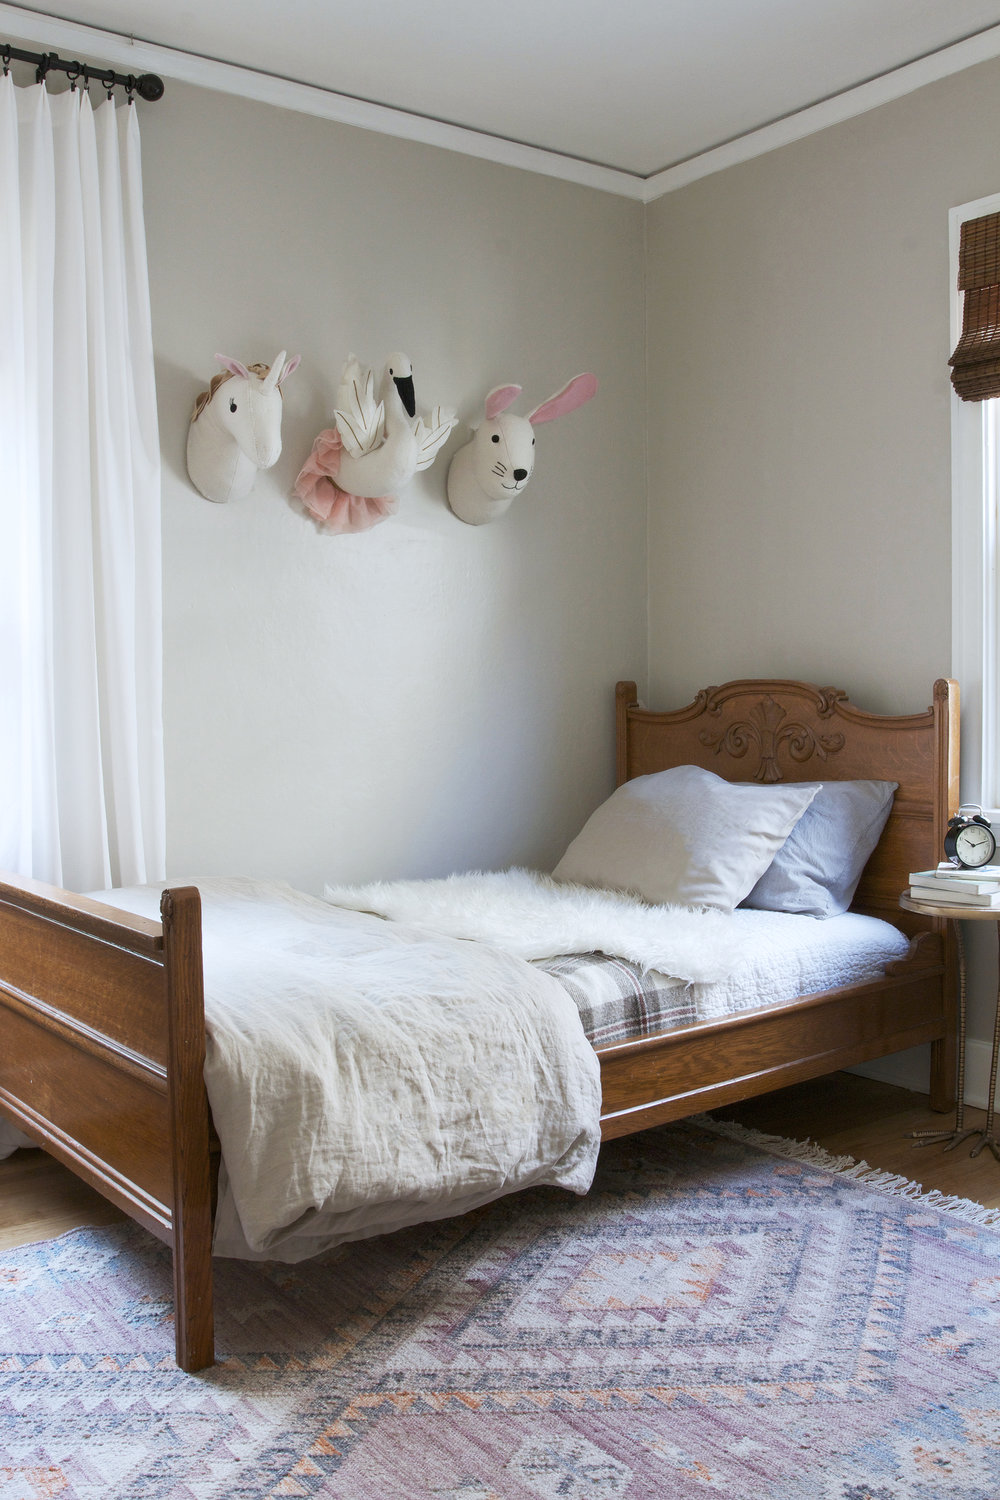 The Grit and Polish - Ravenna 2.0 Kids Bedroom Bed and Animal Heads.jpg